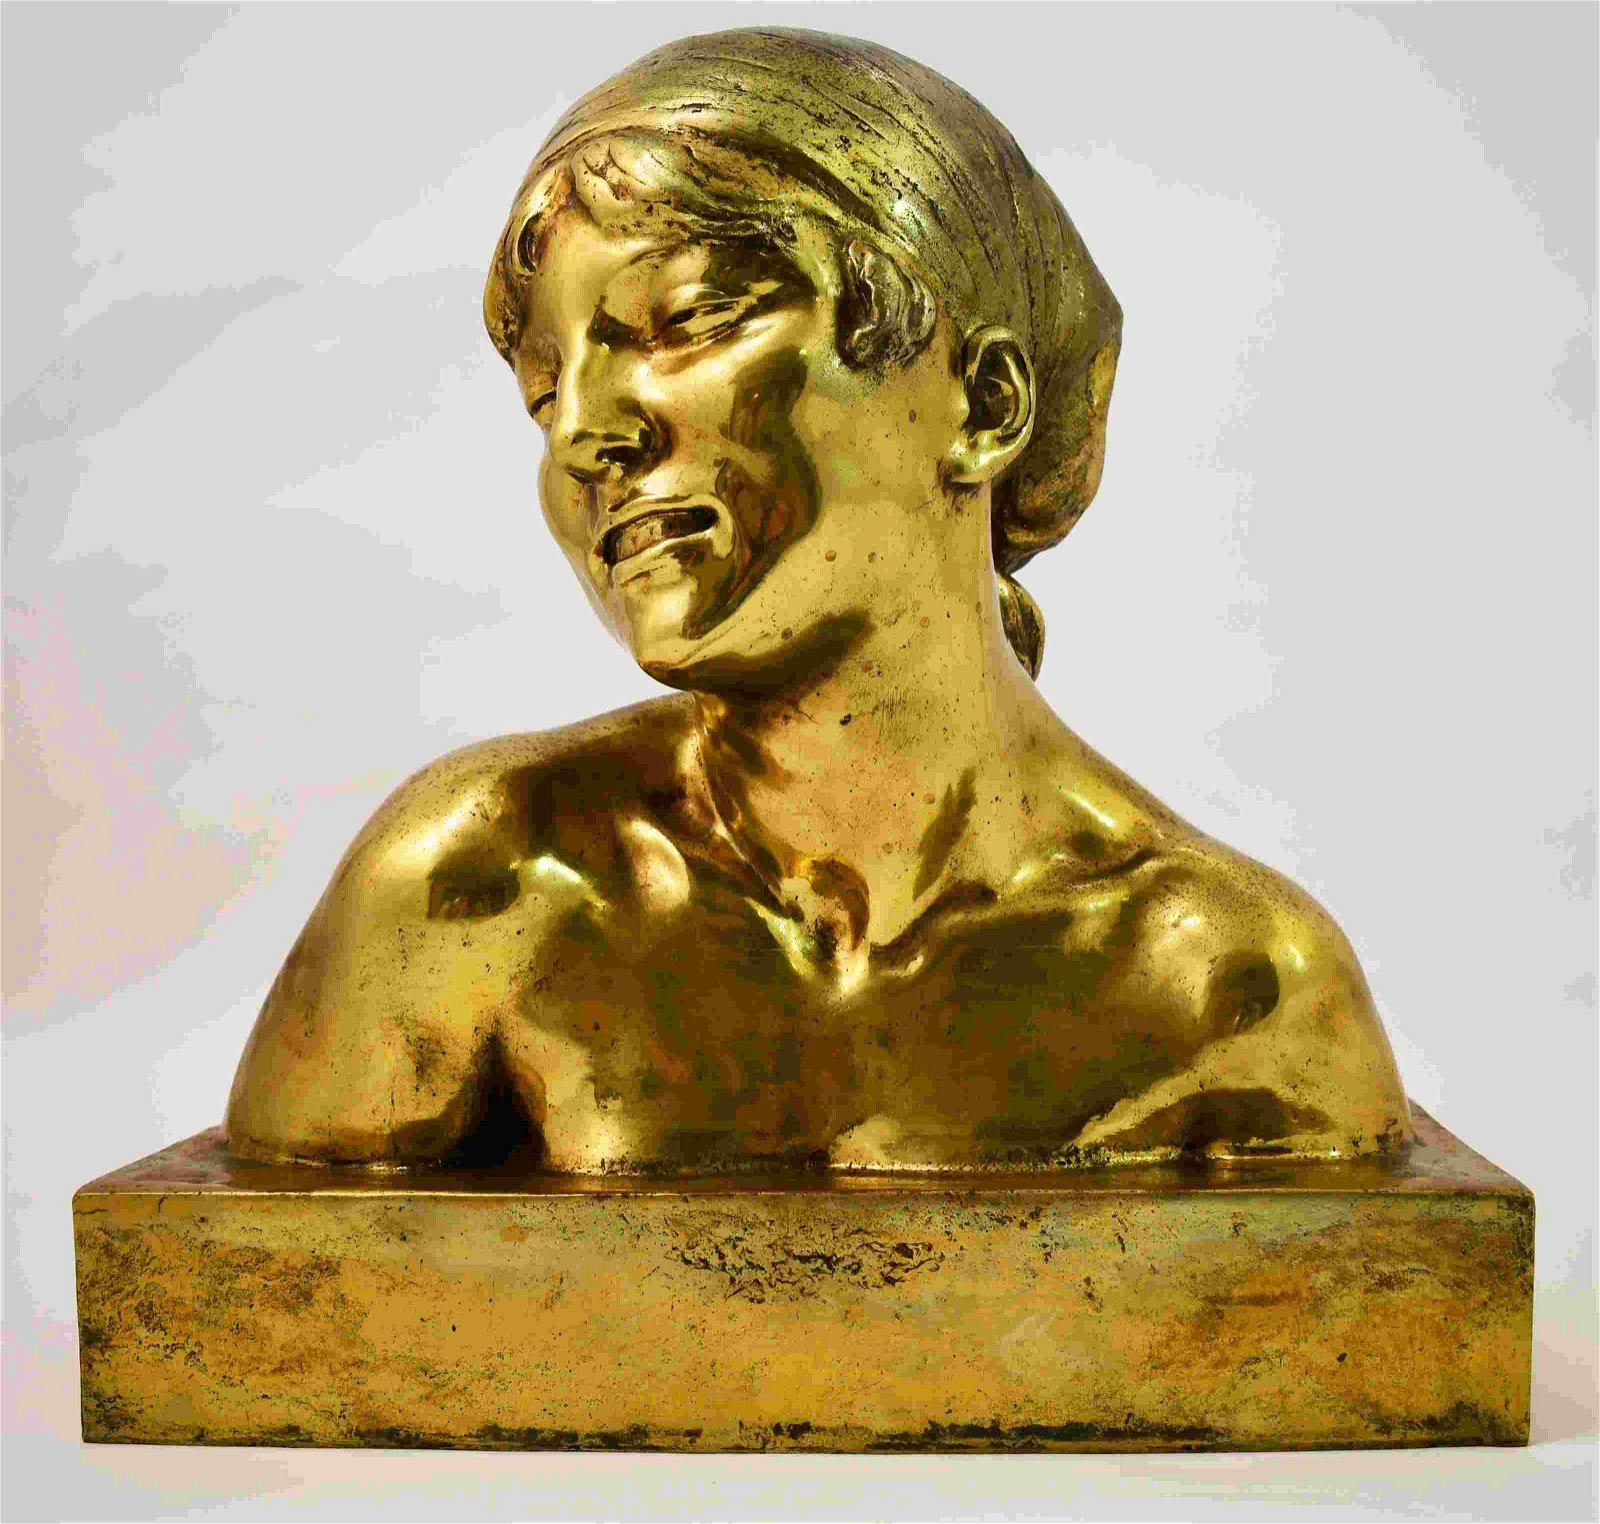 J Ortis (French) Life Size Bronze Bust Young Woman